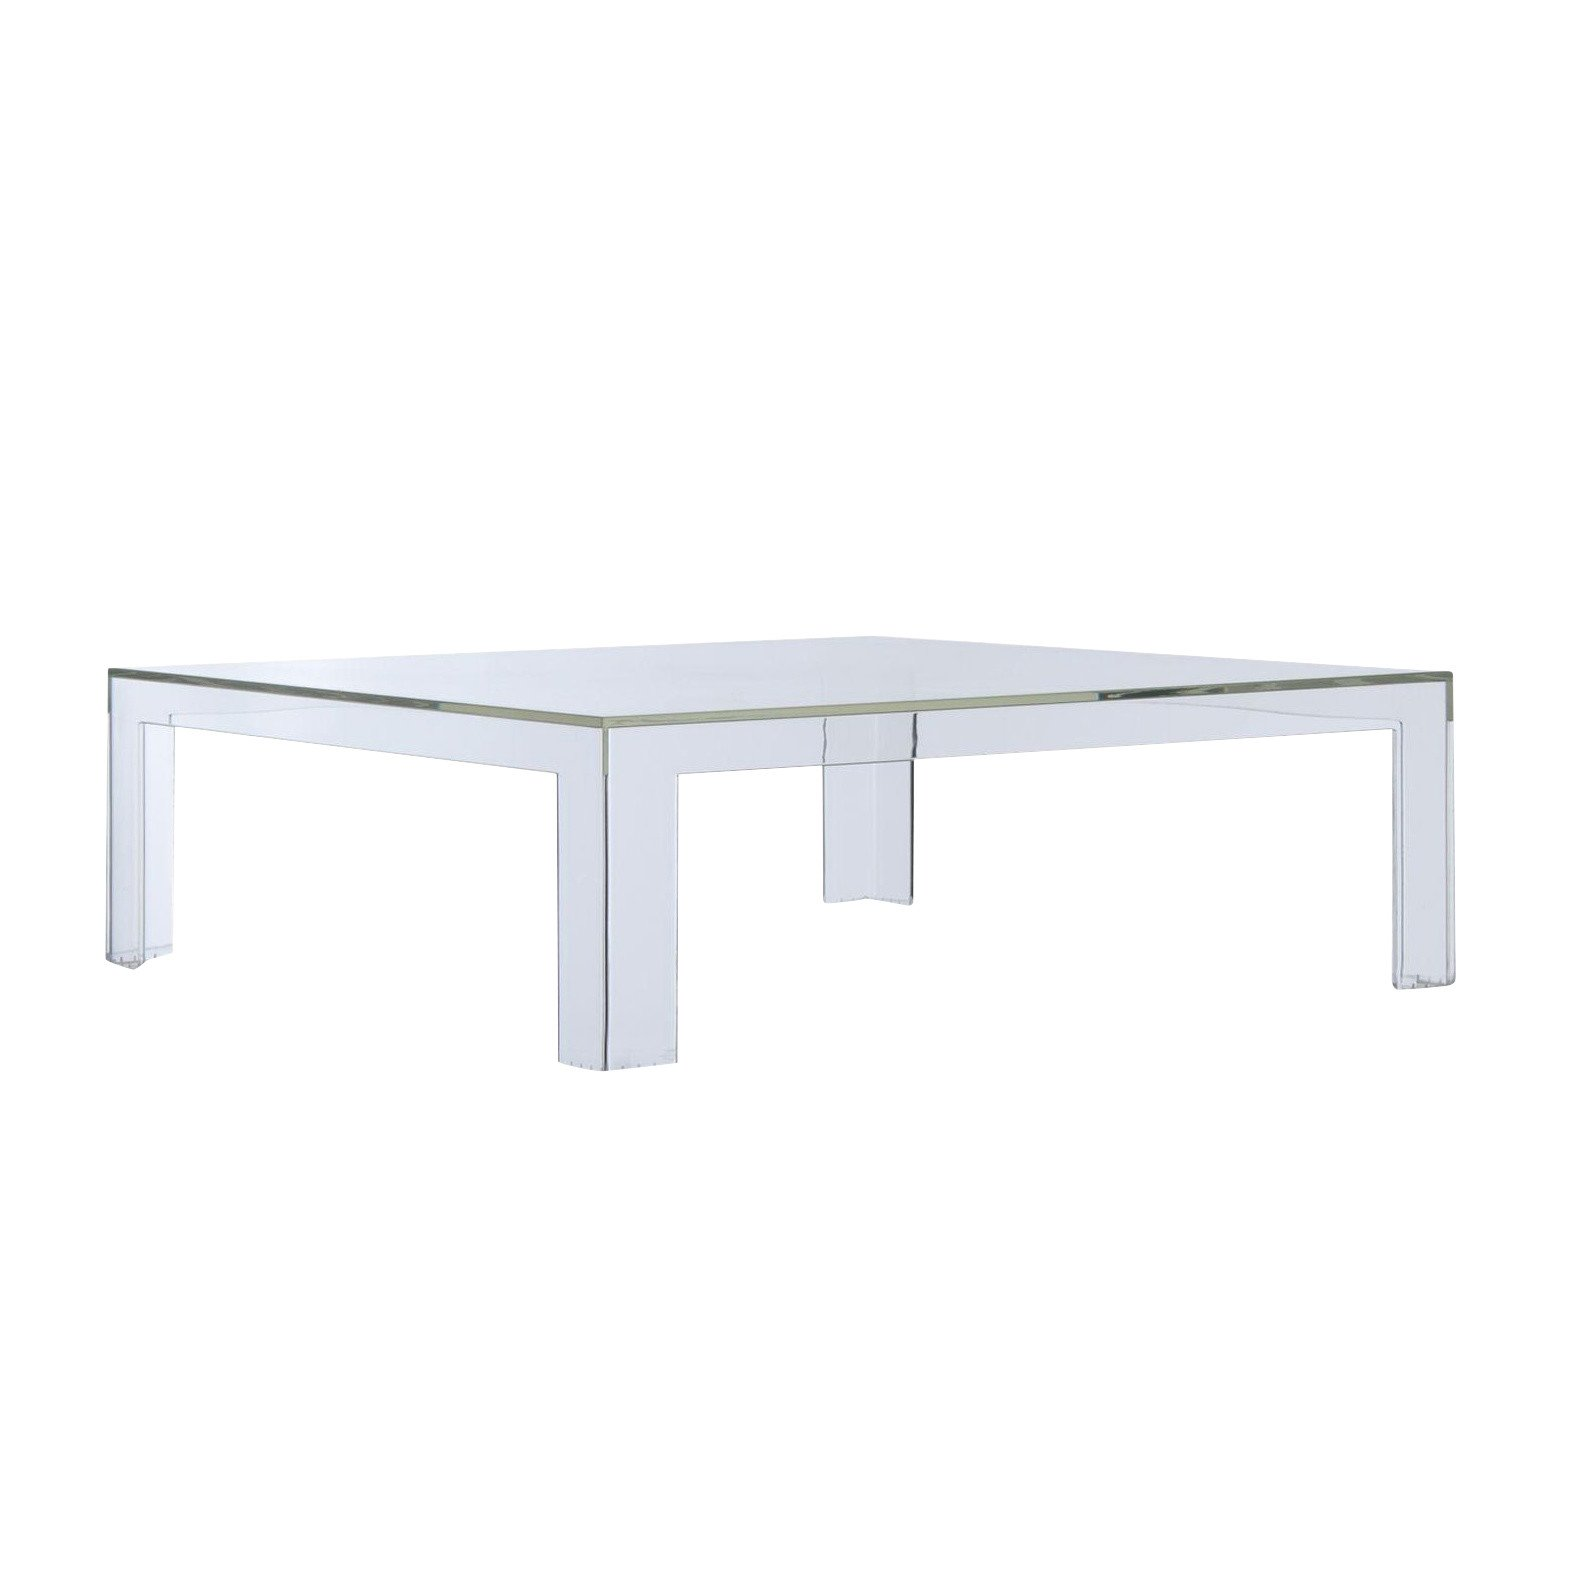 Kartell Invisible Table Coffee Table AmbienteDirect - Kartell invisible coffee table